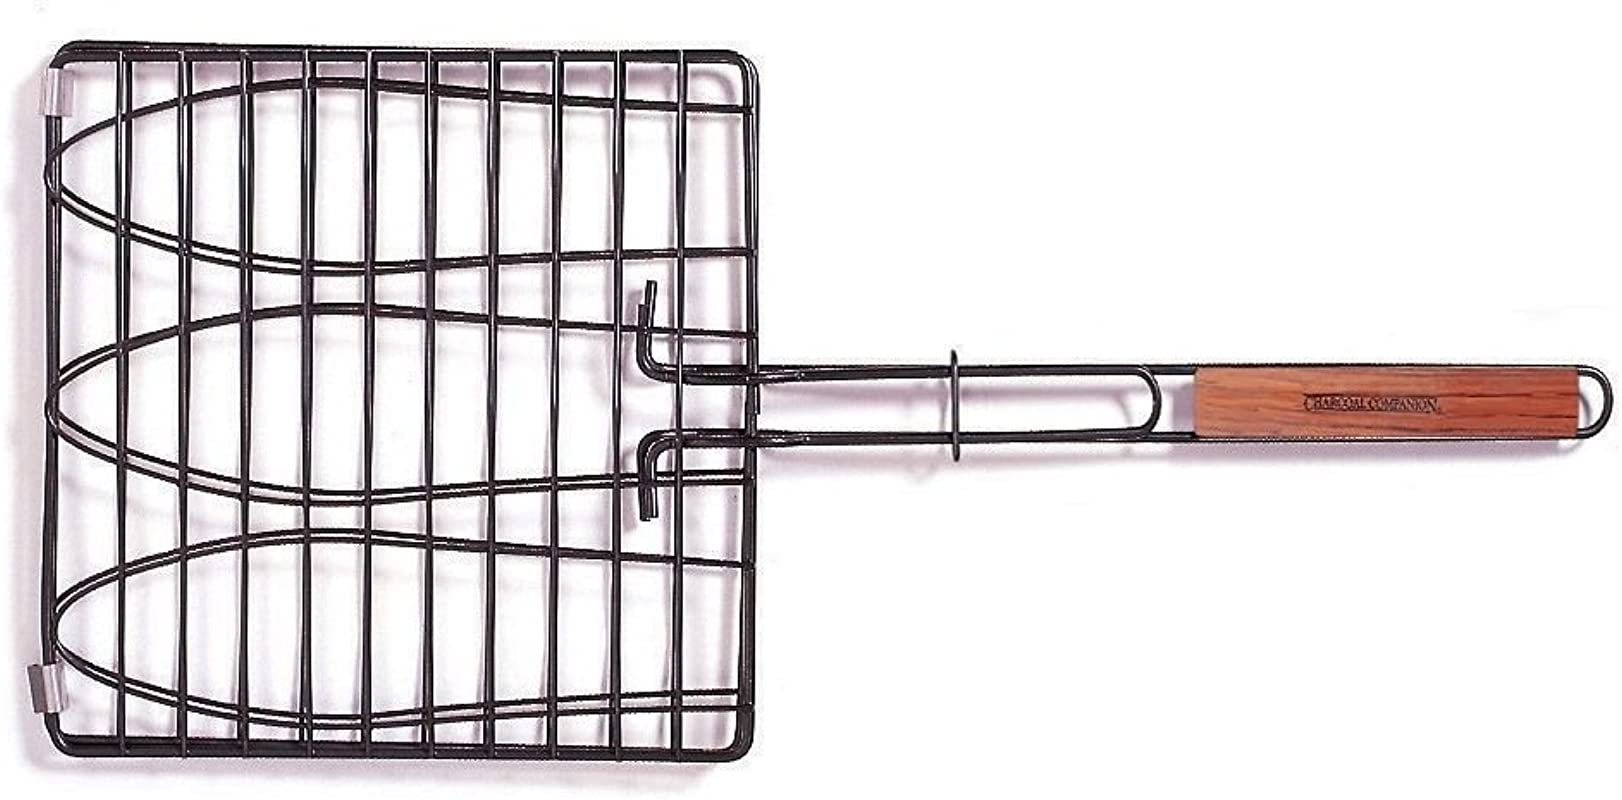 Charcoal Companion SS 100 40 Triple Fish Grilling Basket 11 By 11 Inches Barbecue Fish Easily